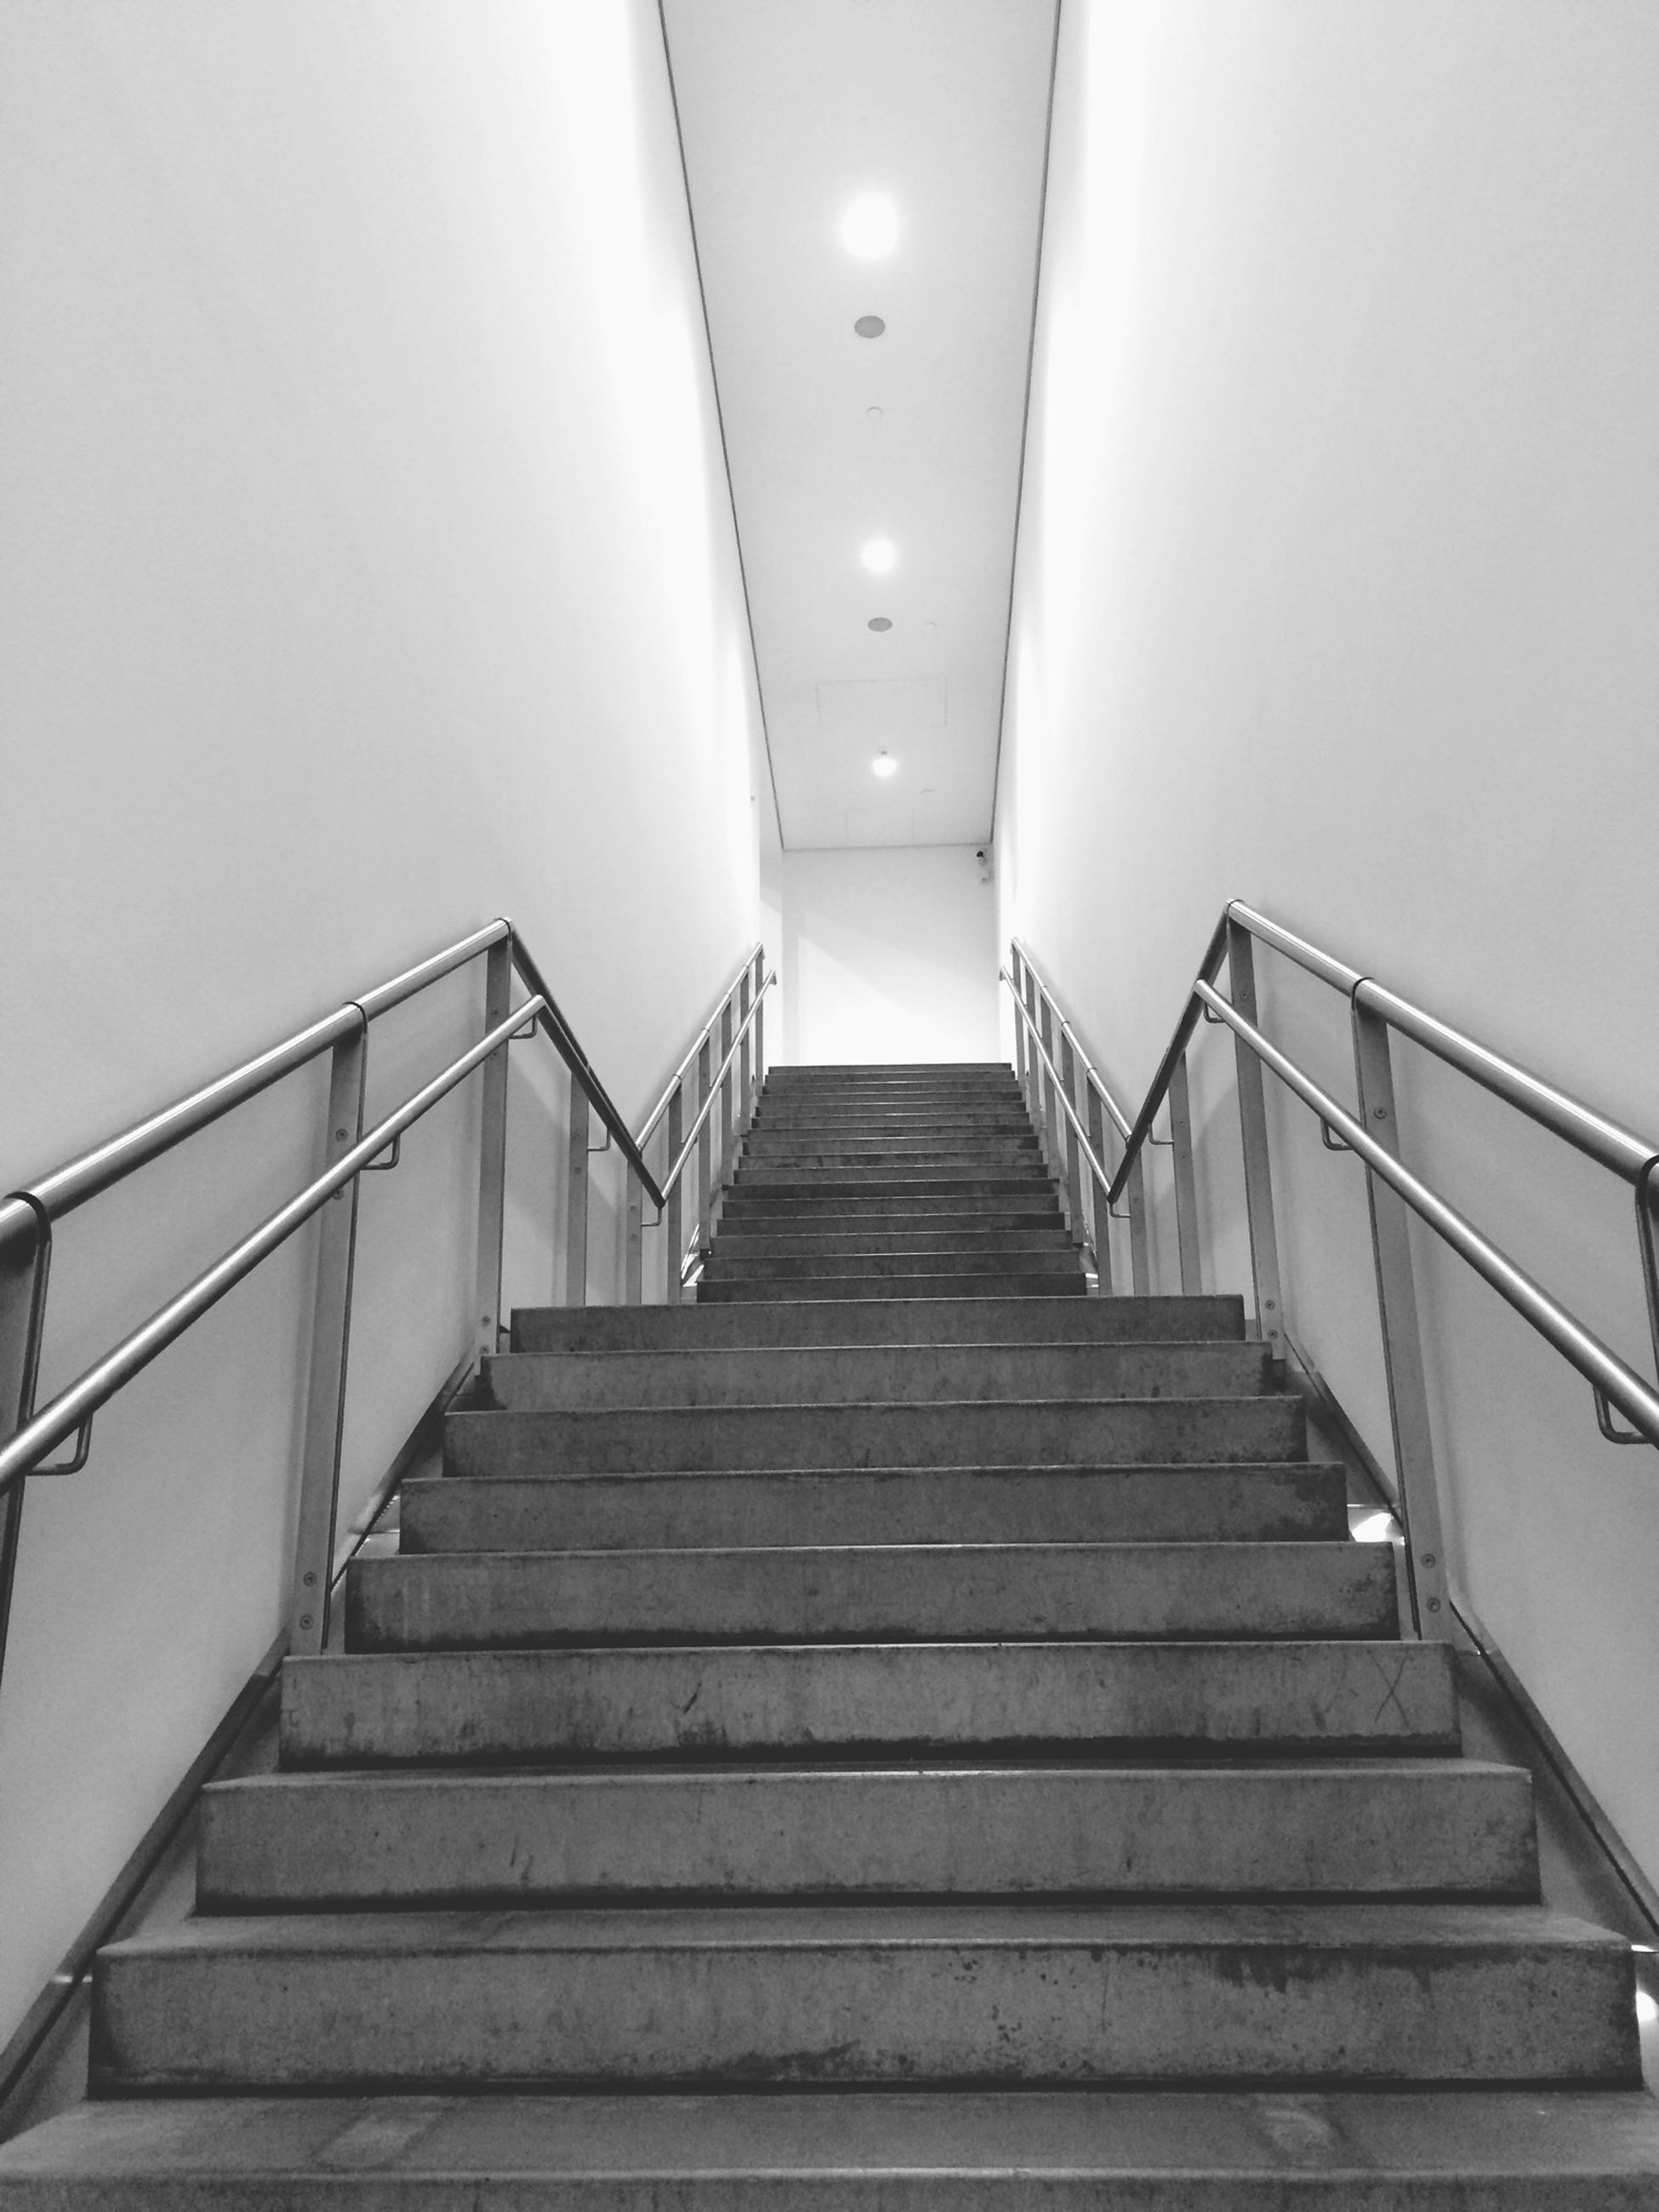 steps, architecture, steps and staircases, indoors, built structure, staircase, the way forward, railing, stairs, wall - building feature, corridor, diminishing perspective, building, low angle view, ceiling, wall, narrow, empty, absence, no people